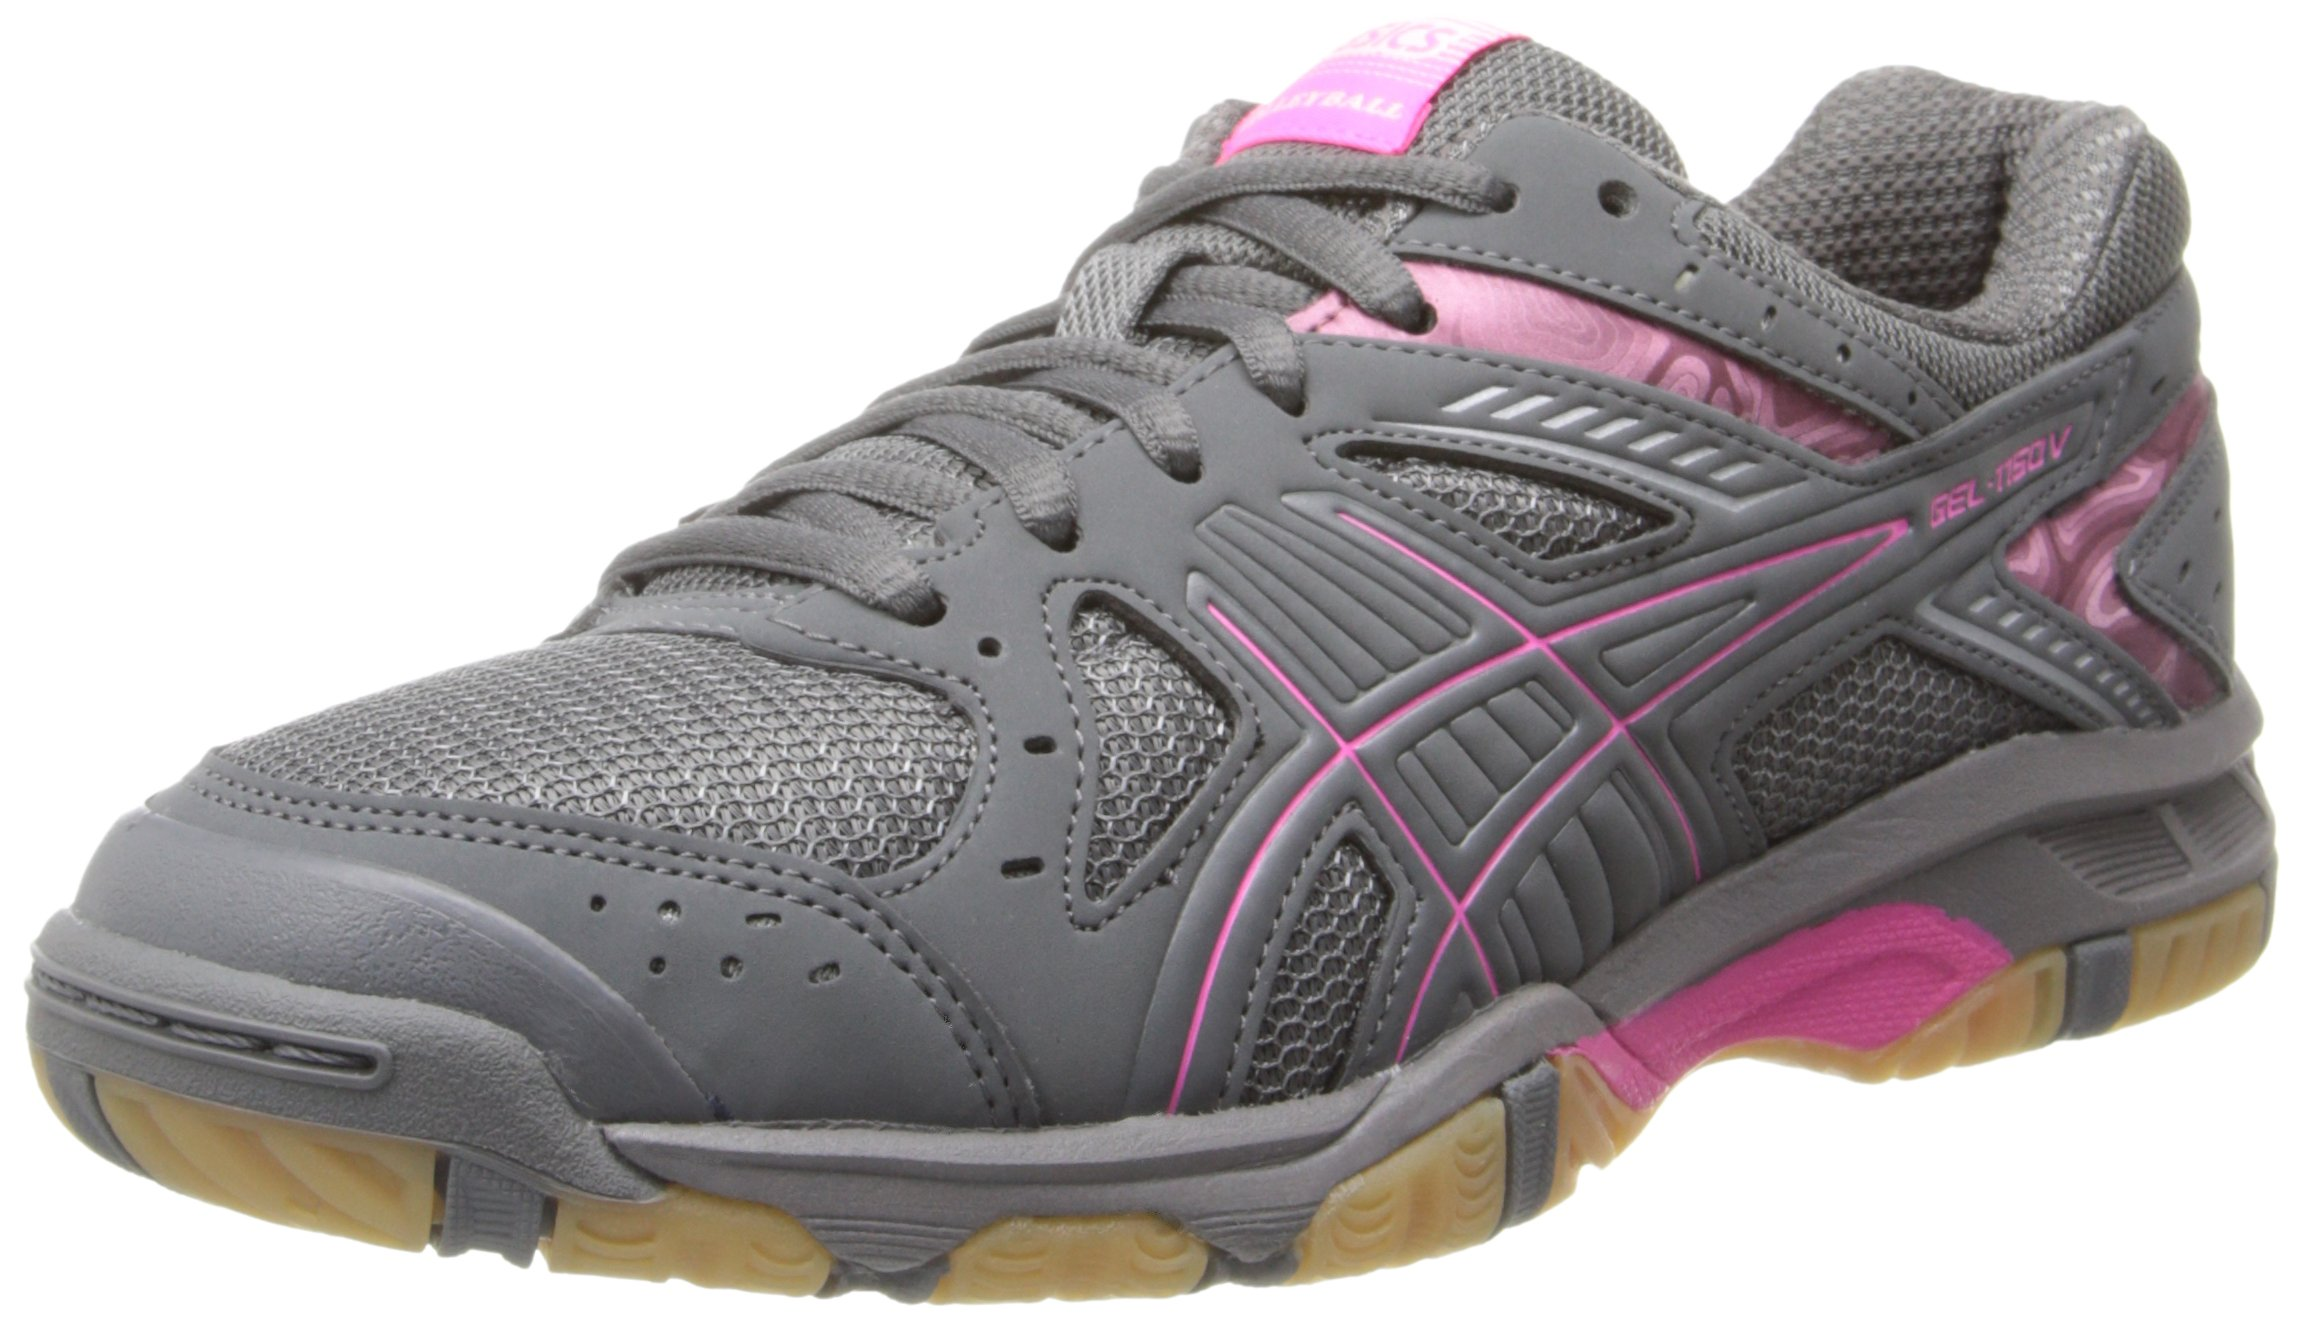 ASICS Women's Gel 1150V Volley Ball Shoe,Smoke/Knock Out Pink/Silver,8.5 M US by ASICS